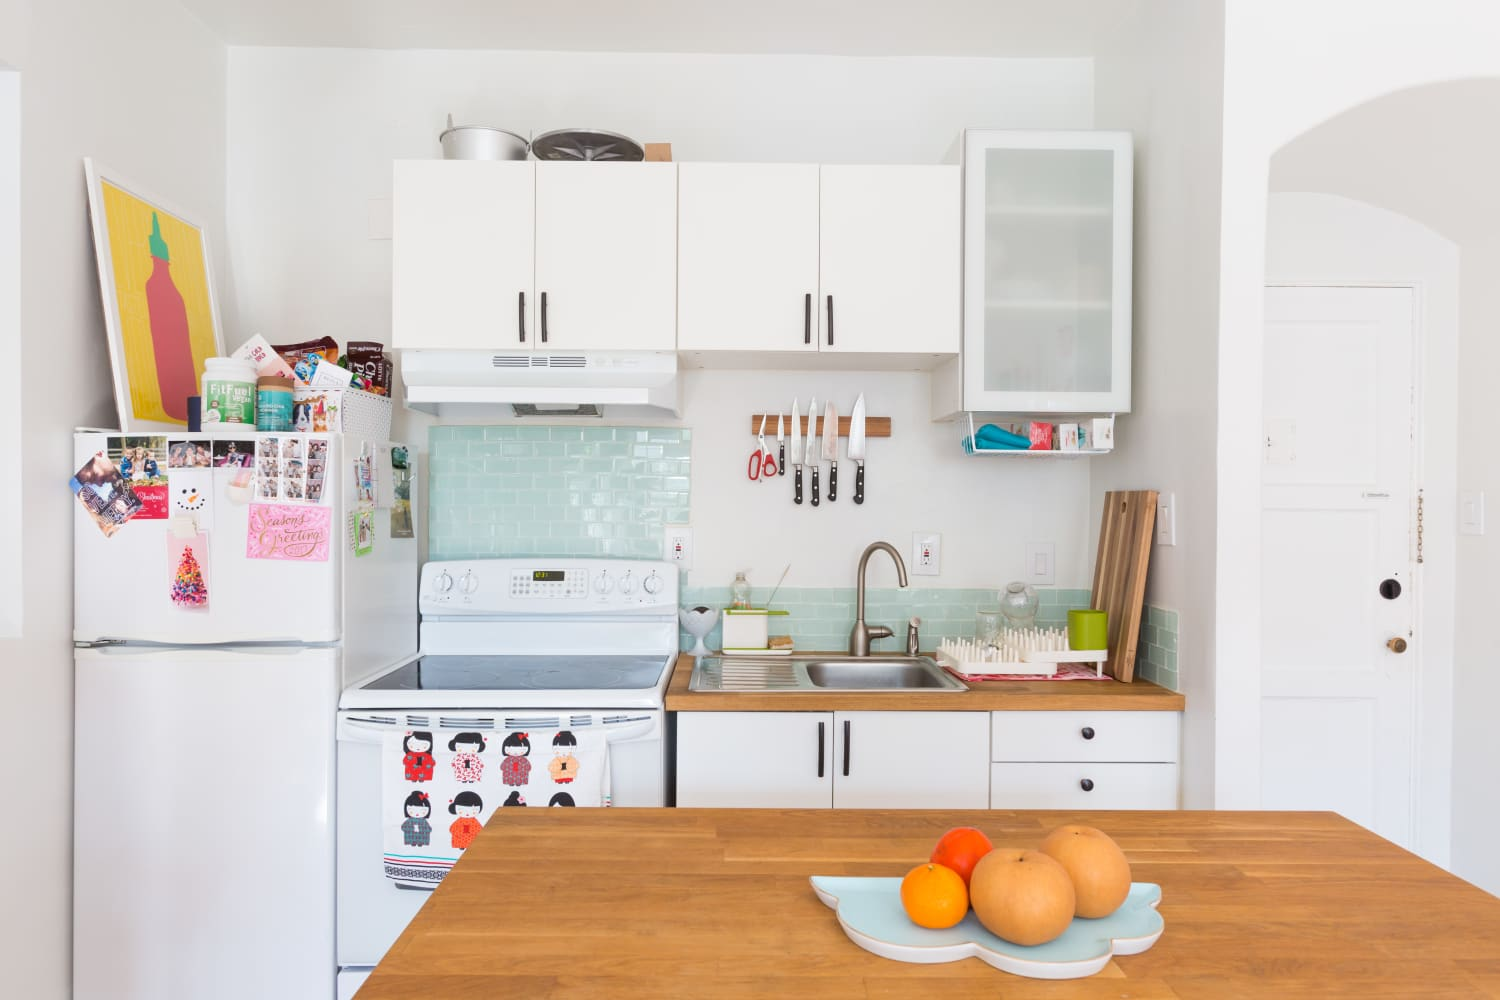 8 Products That Make My Small Kitchen Seem Way More Spacious